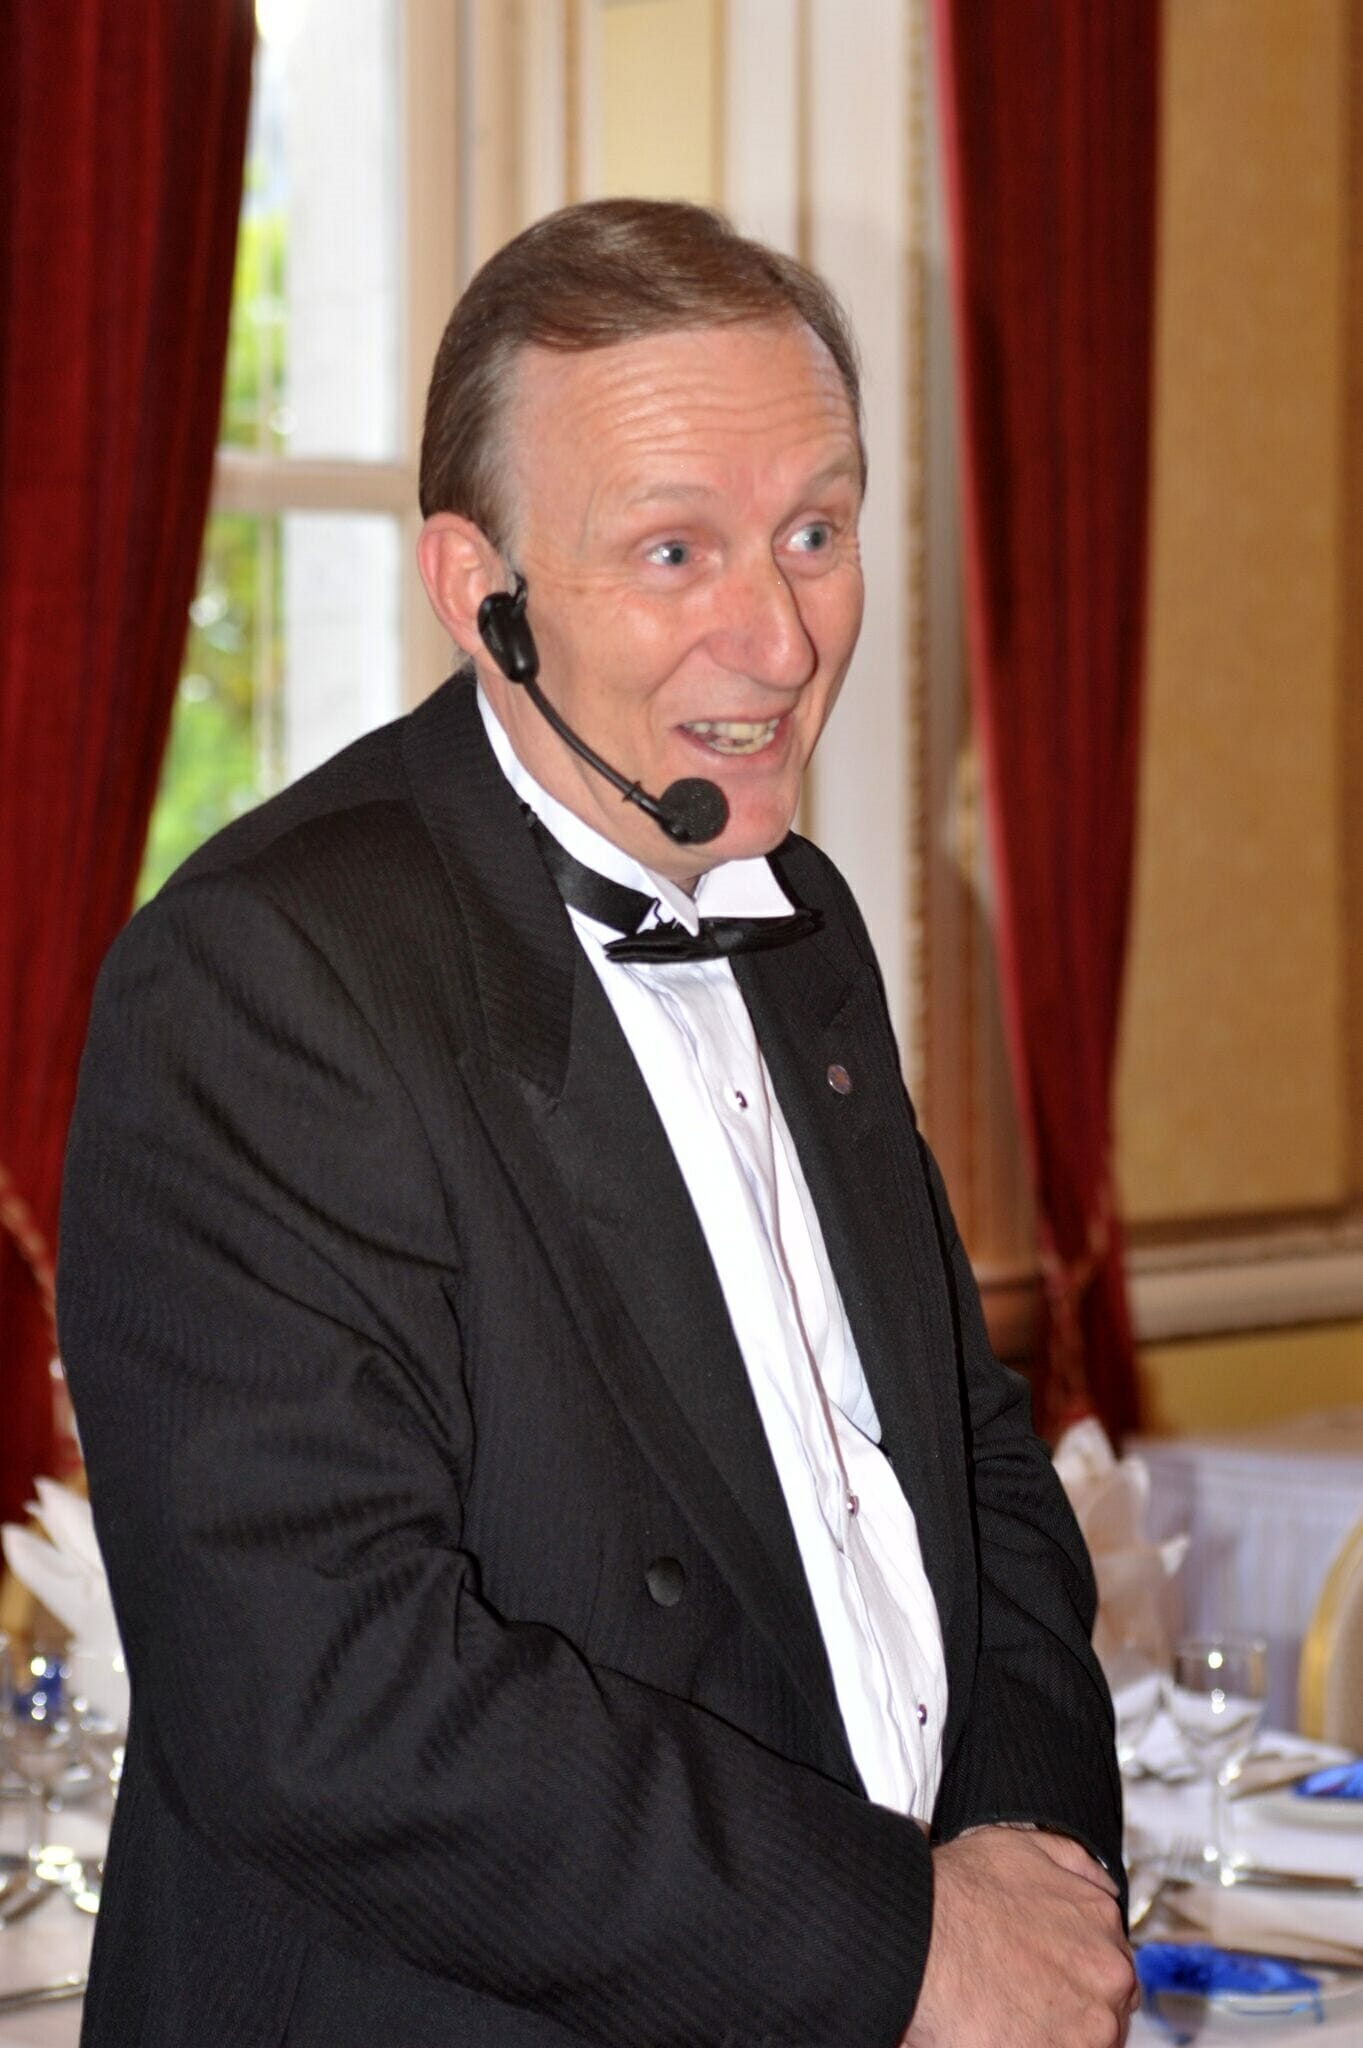 Fundraising Auctioneer Oxfordshire OZ